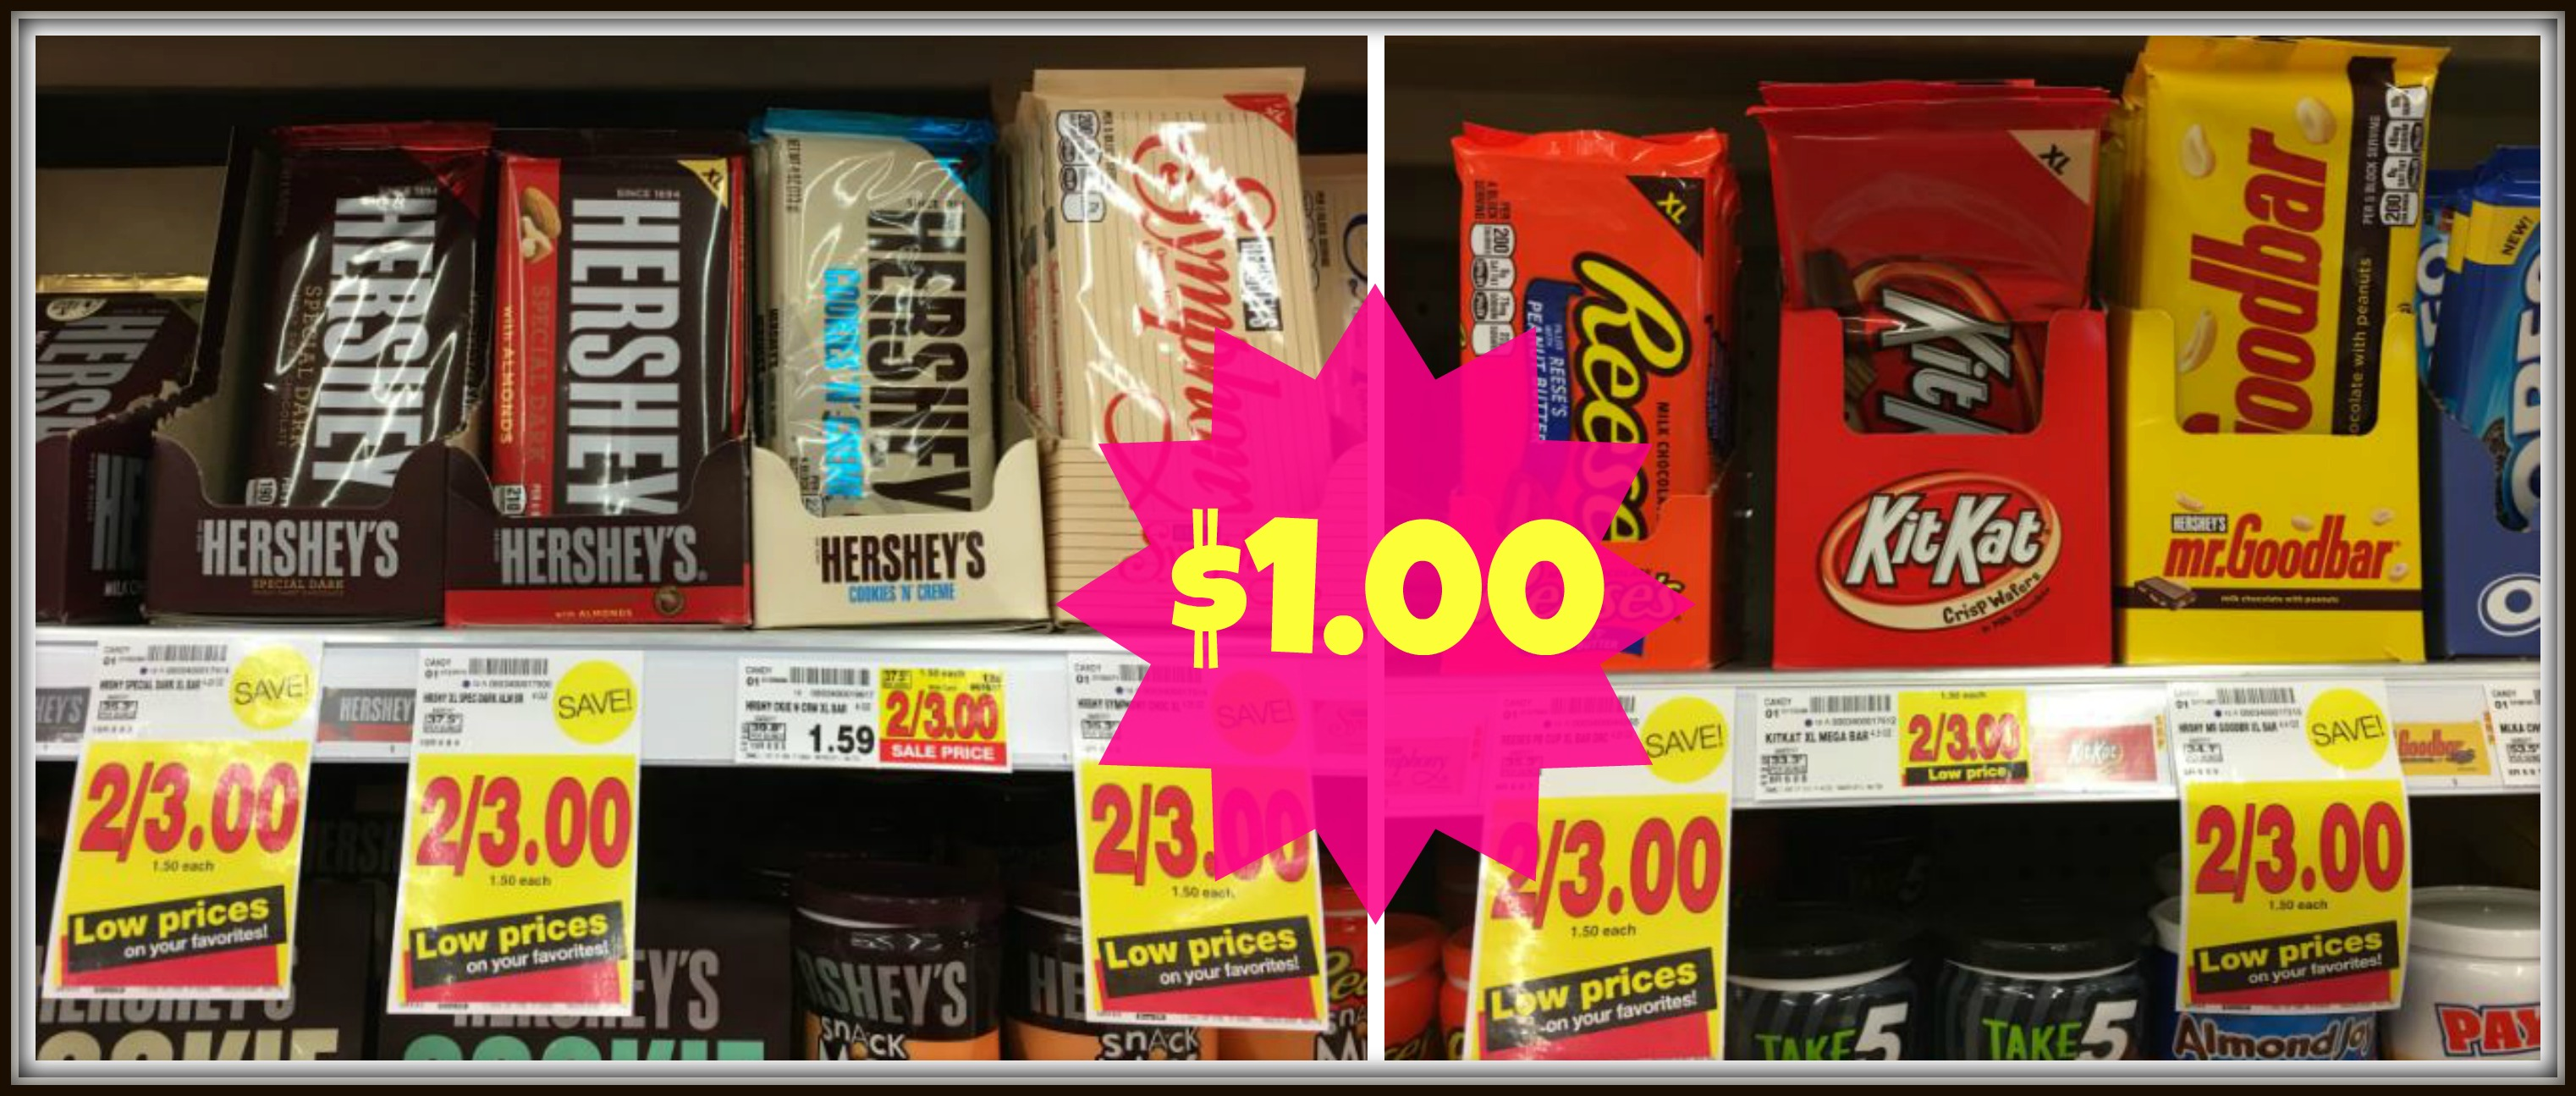 Hershey S Xl Candy Bars Only 1 00 At Kroger